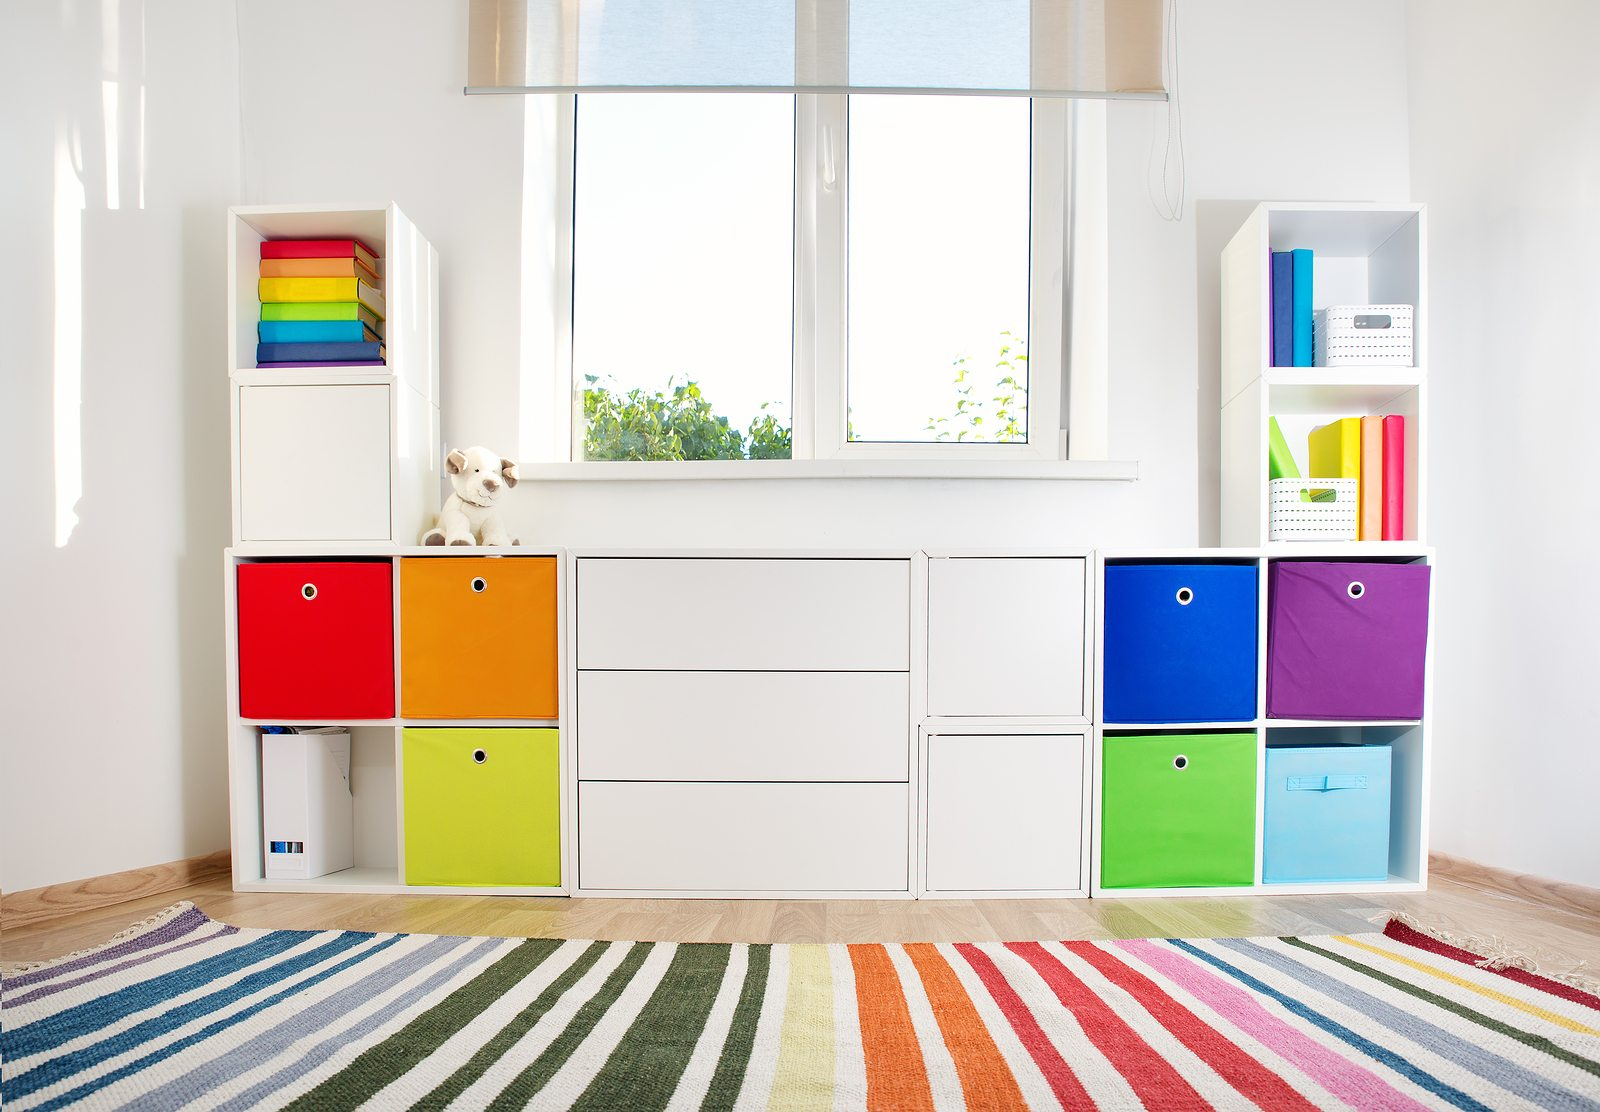 Colourful children rooom with white walls and furniture. Rainbow carpet at home interior with a window